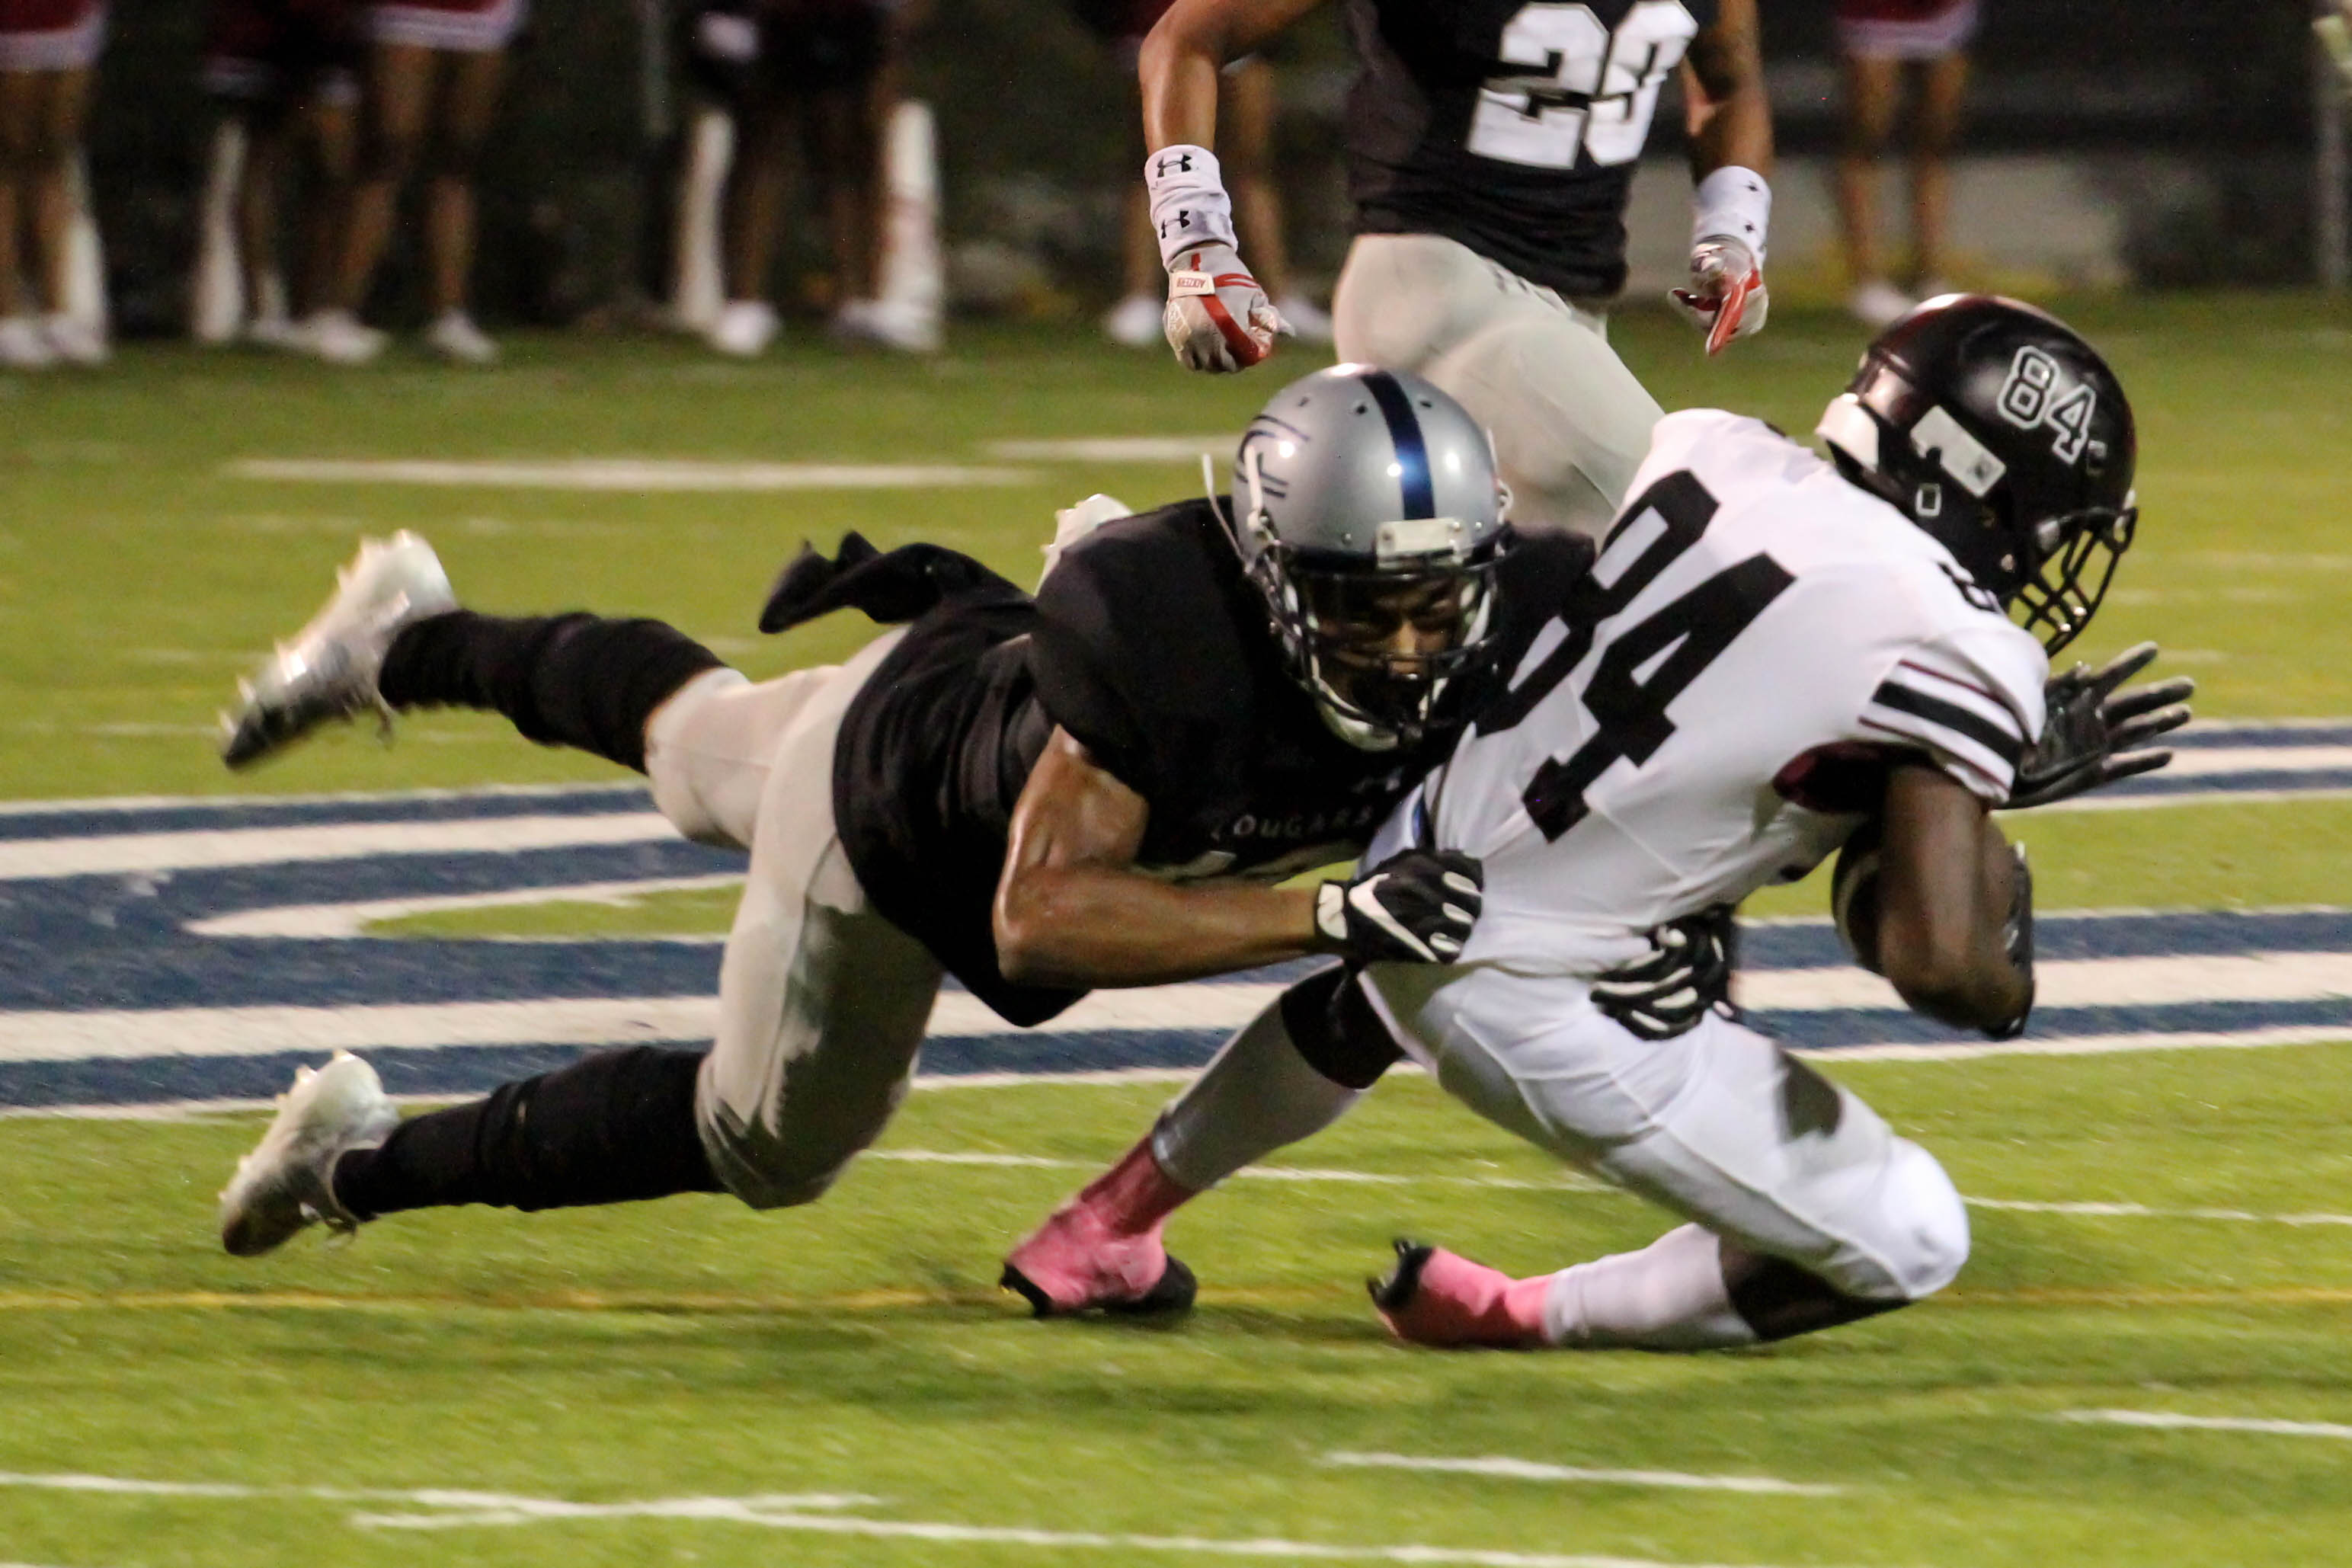 Clay-Chalkville handles Shades Valley 31-6 on homecoming